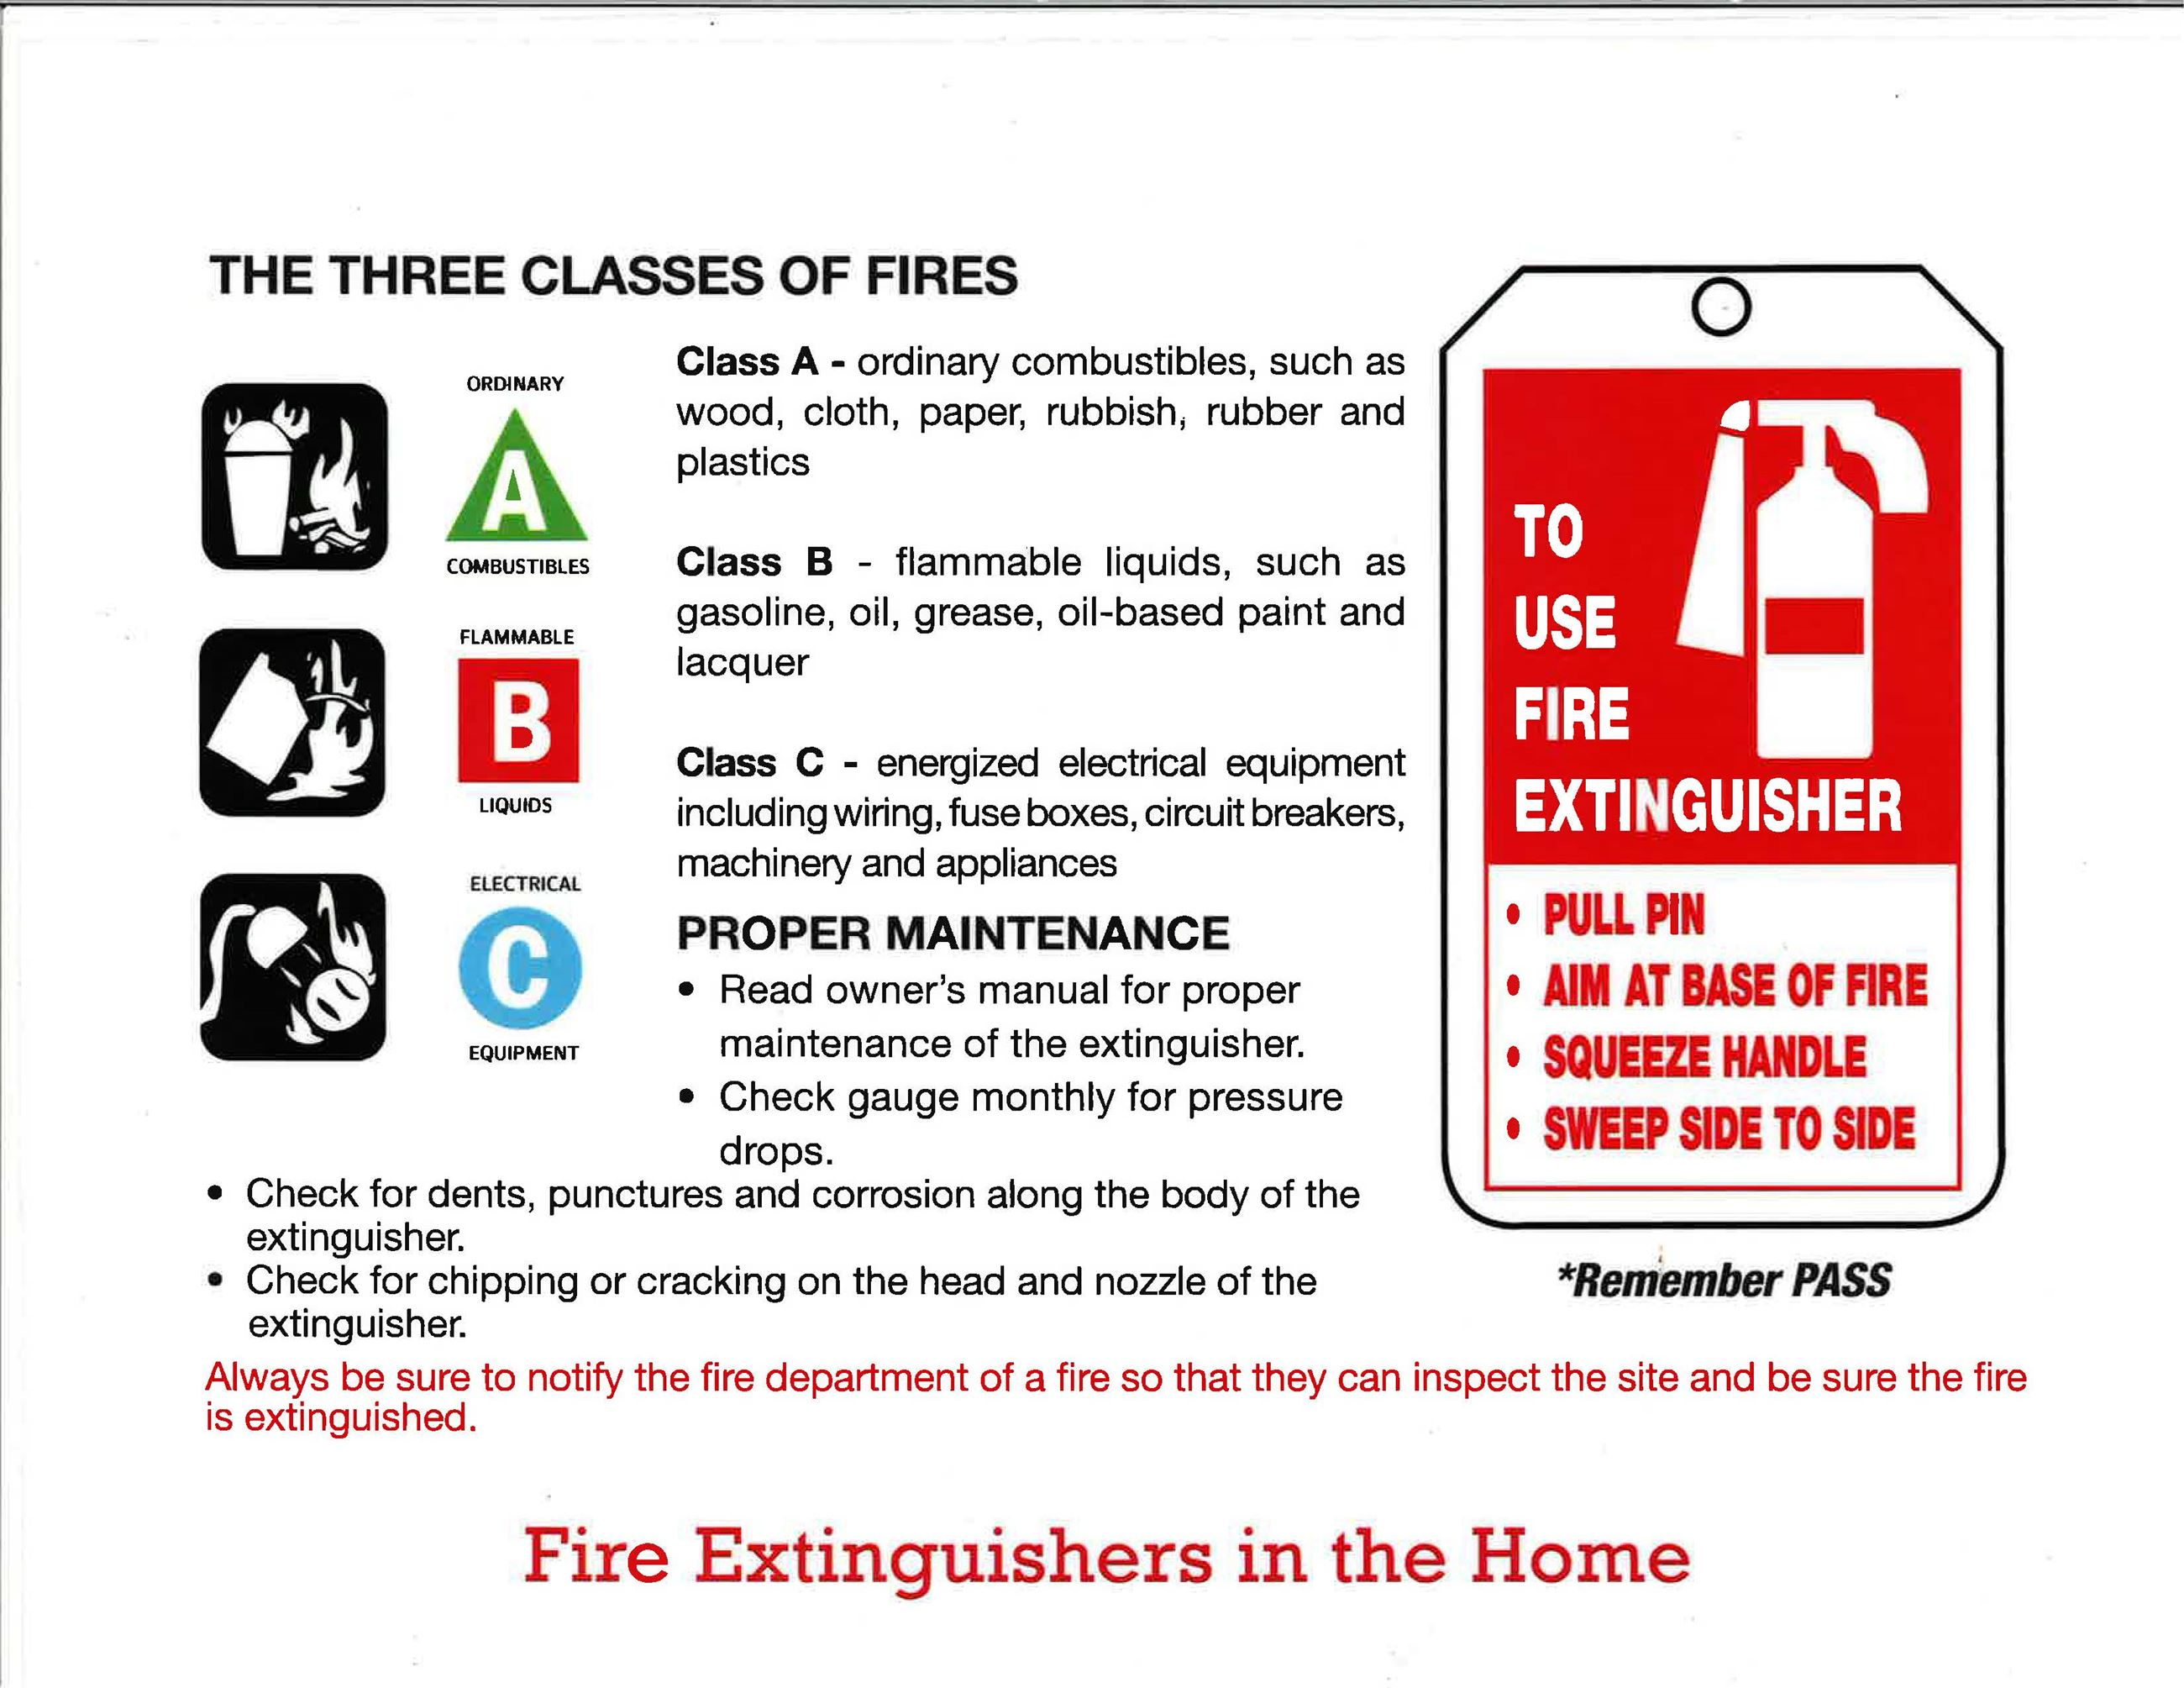 Fire Extinguishers in the Home